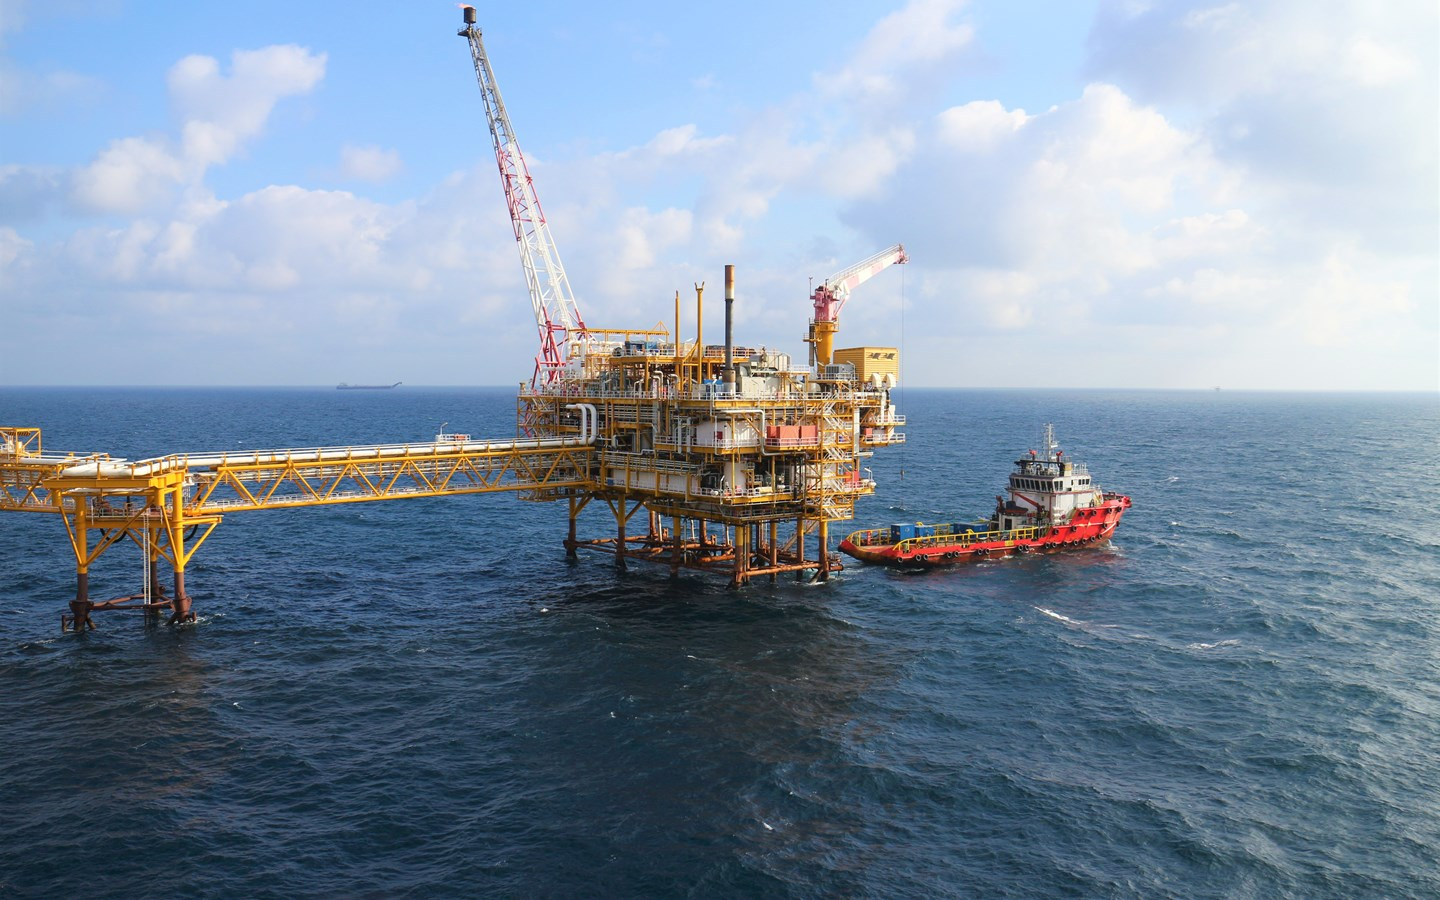 Dutch offshore E&P industry work together to ensure energy supply during COVID-19